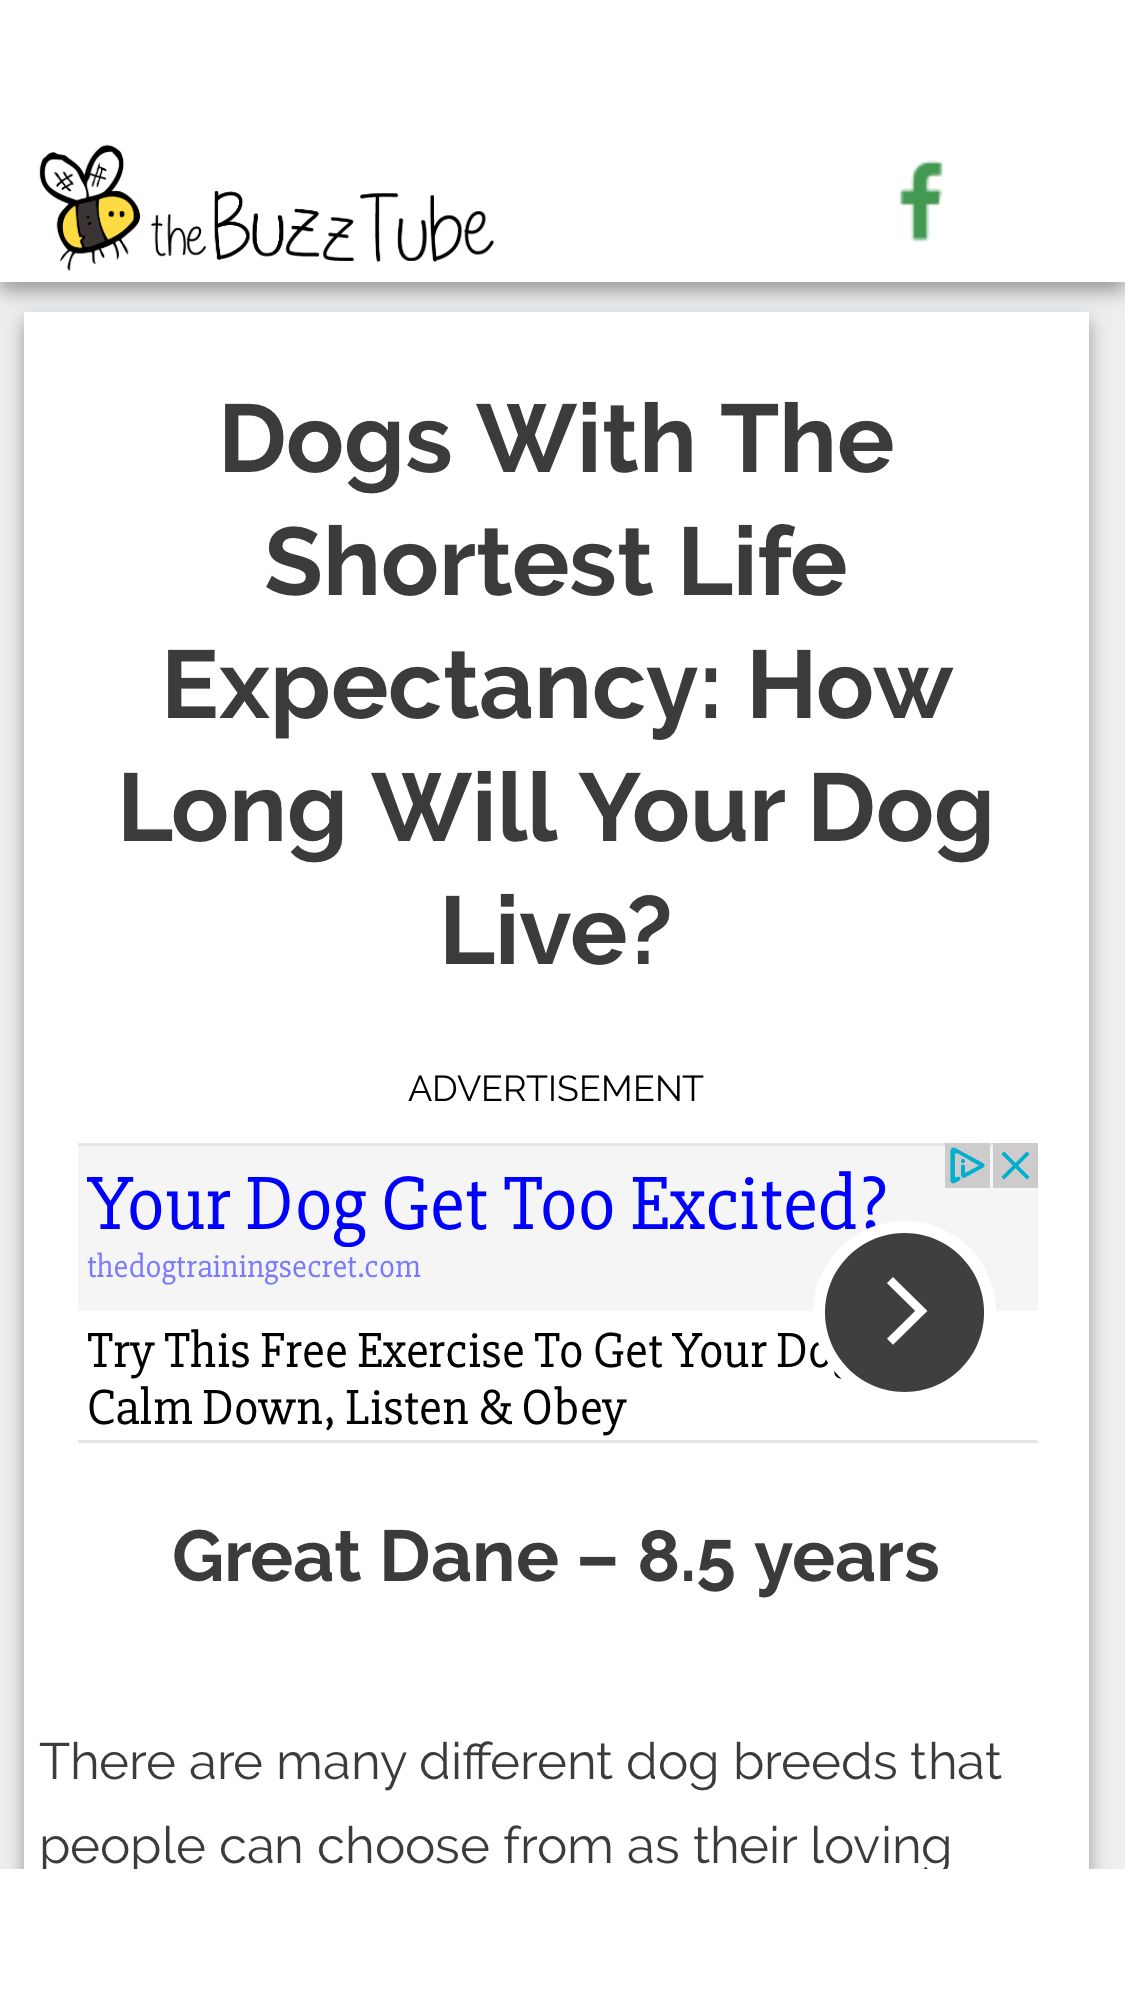 Dogs with the shortest life expectancy how long will your